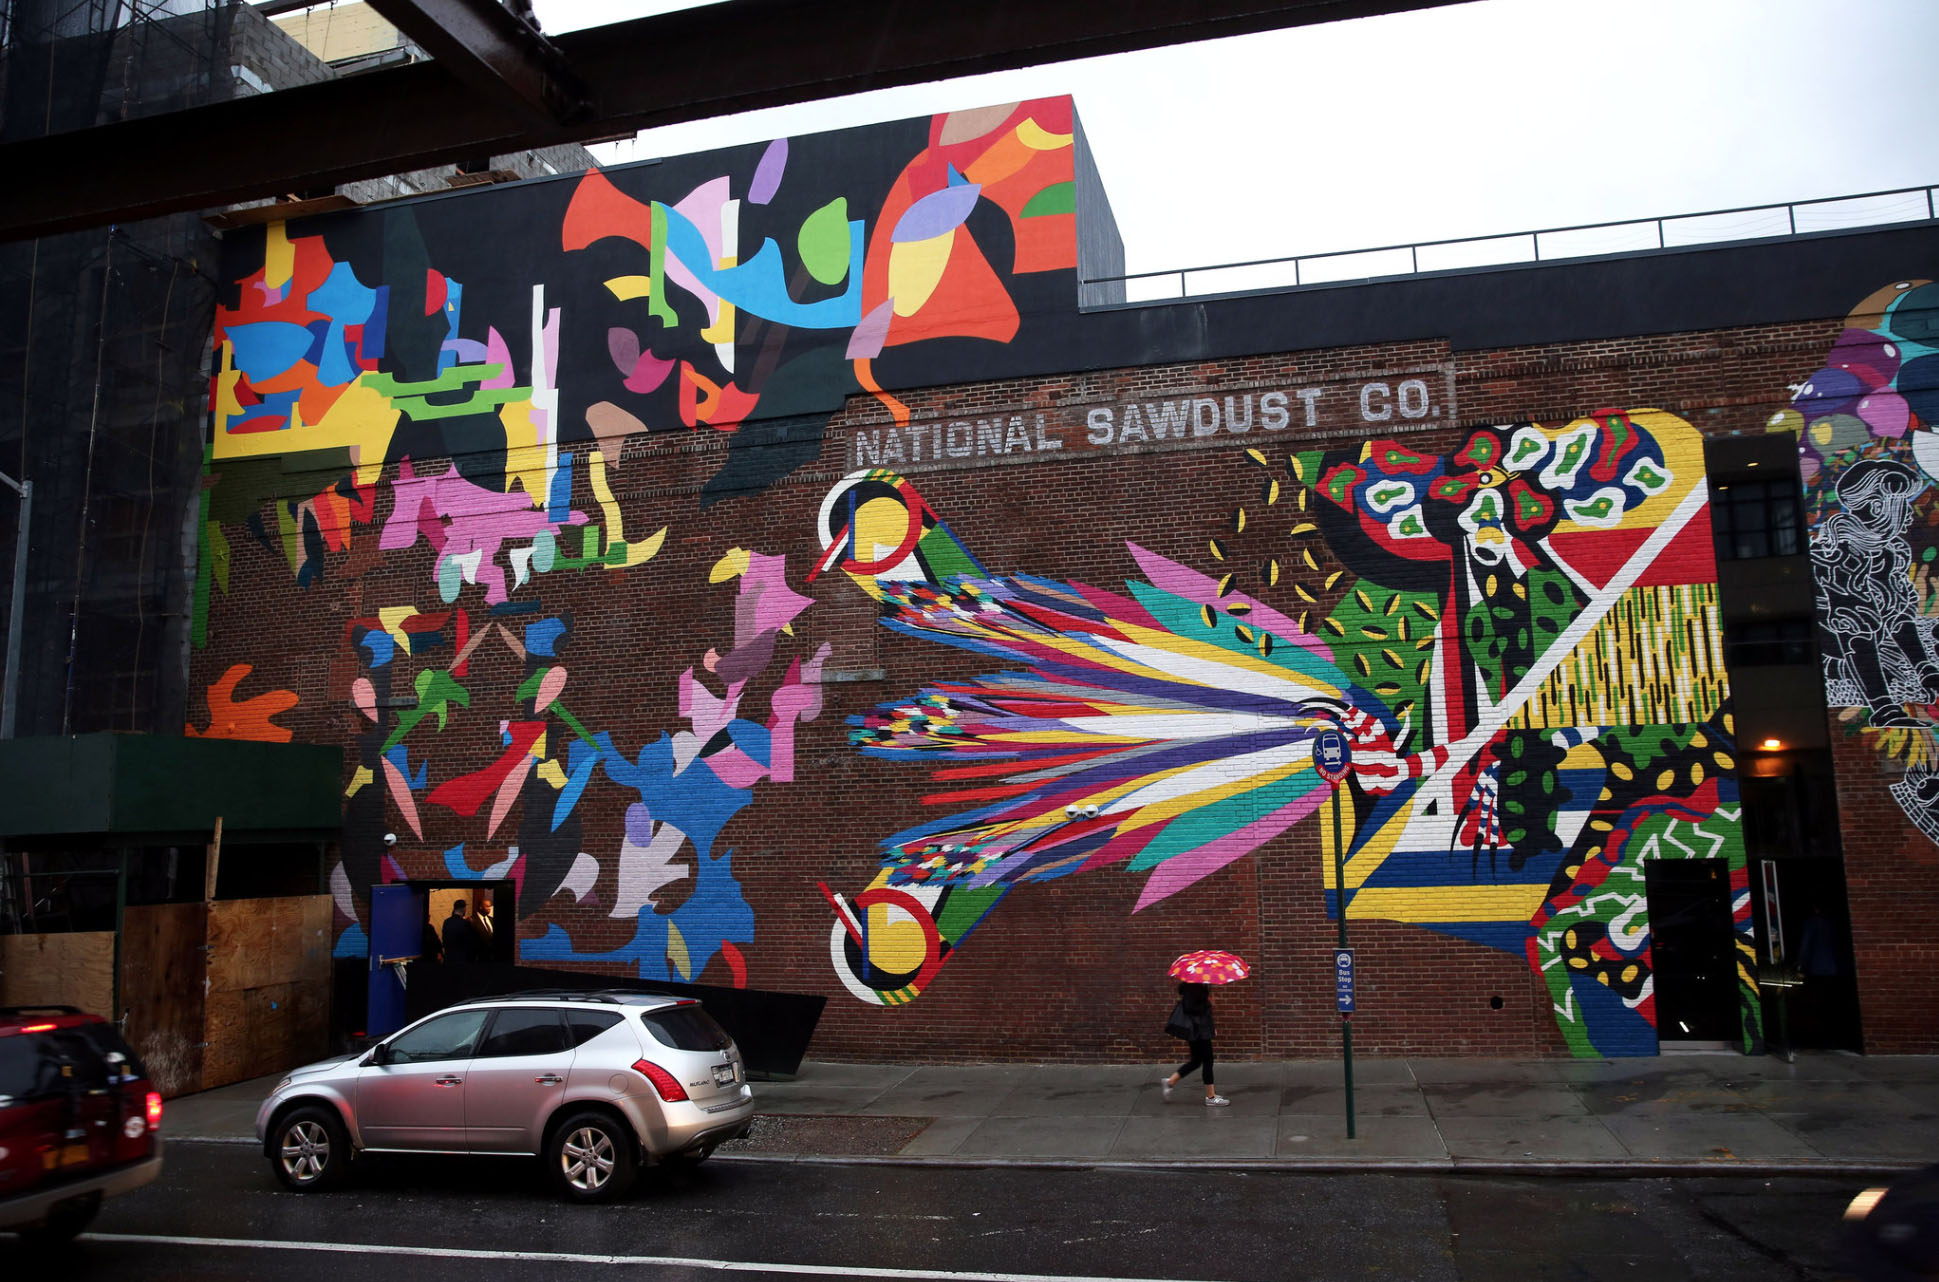 National Sawdust in Williamsburg, Brooklyn.CreditRichard Perry/The New York Times